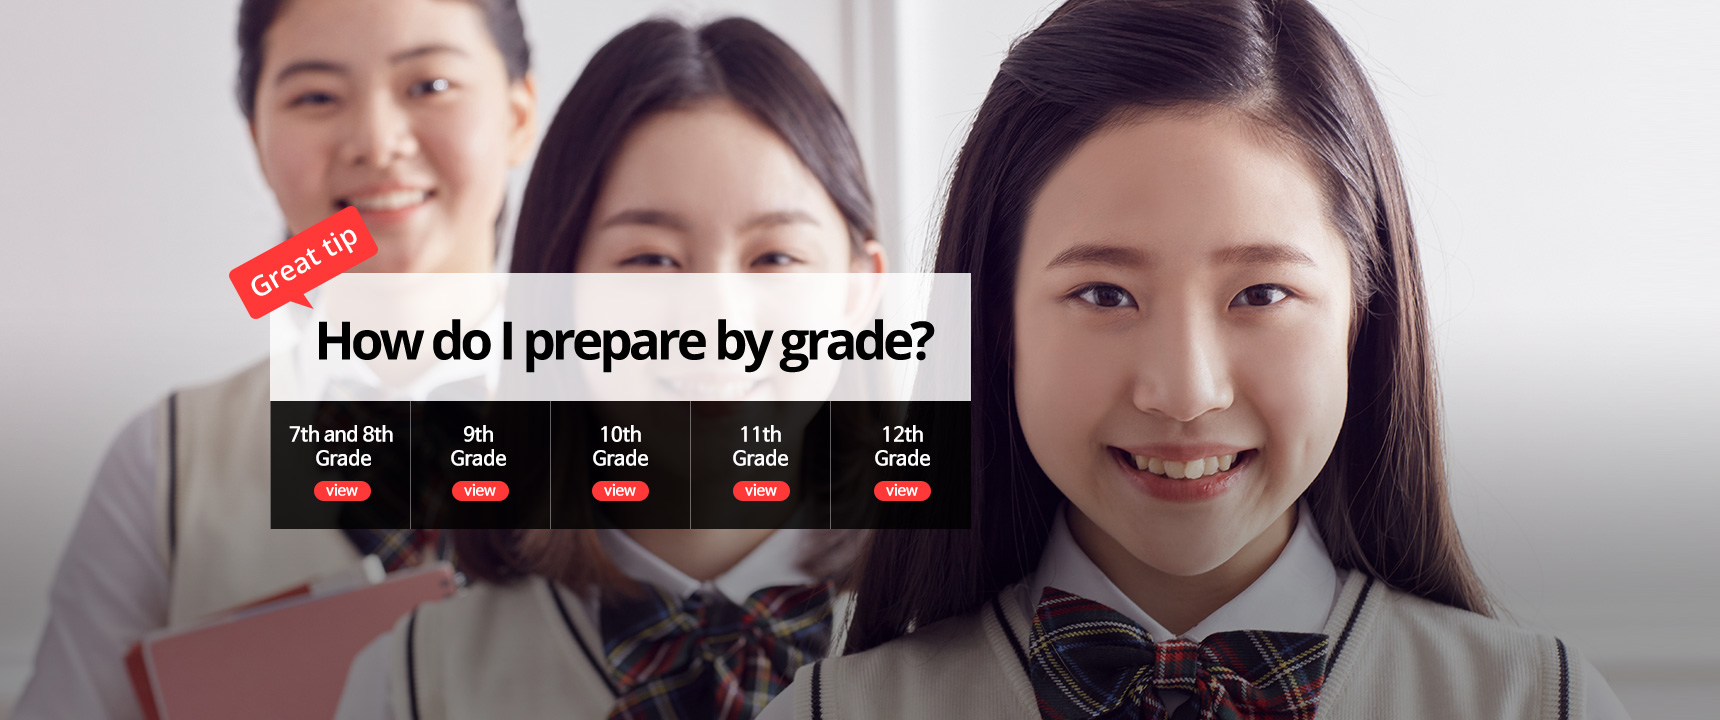 How to prepare by grade